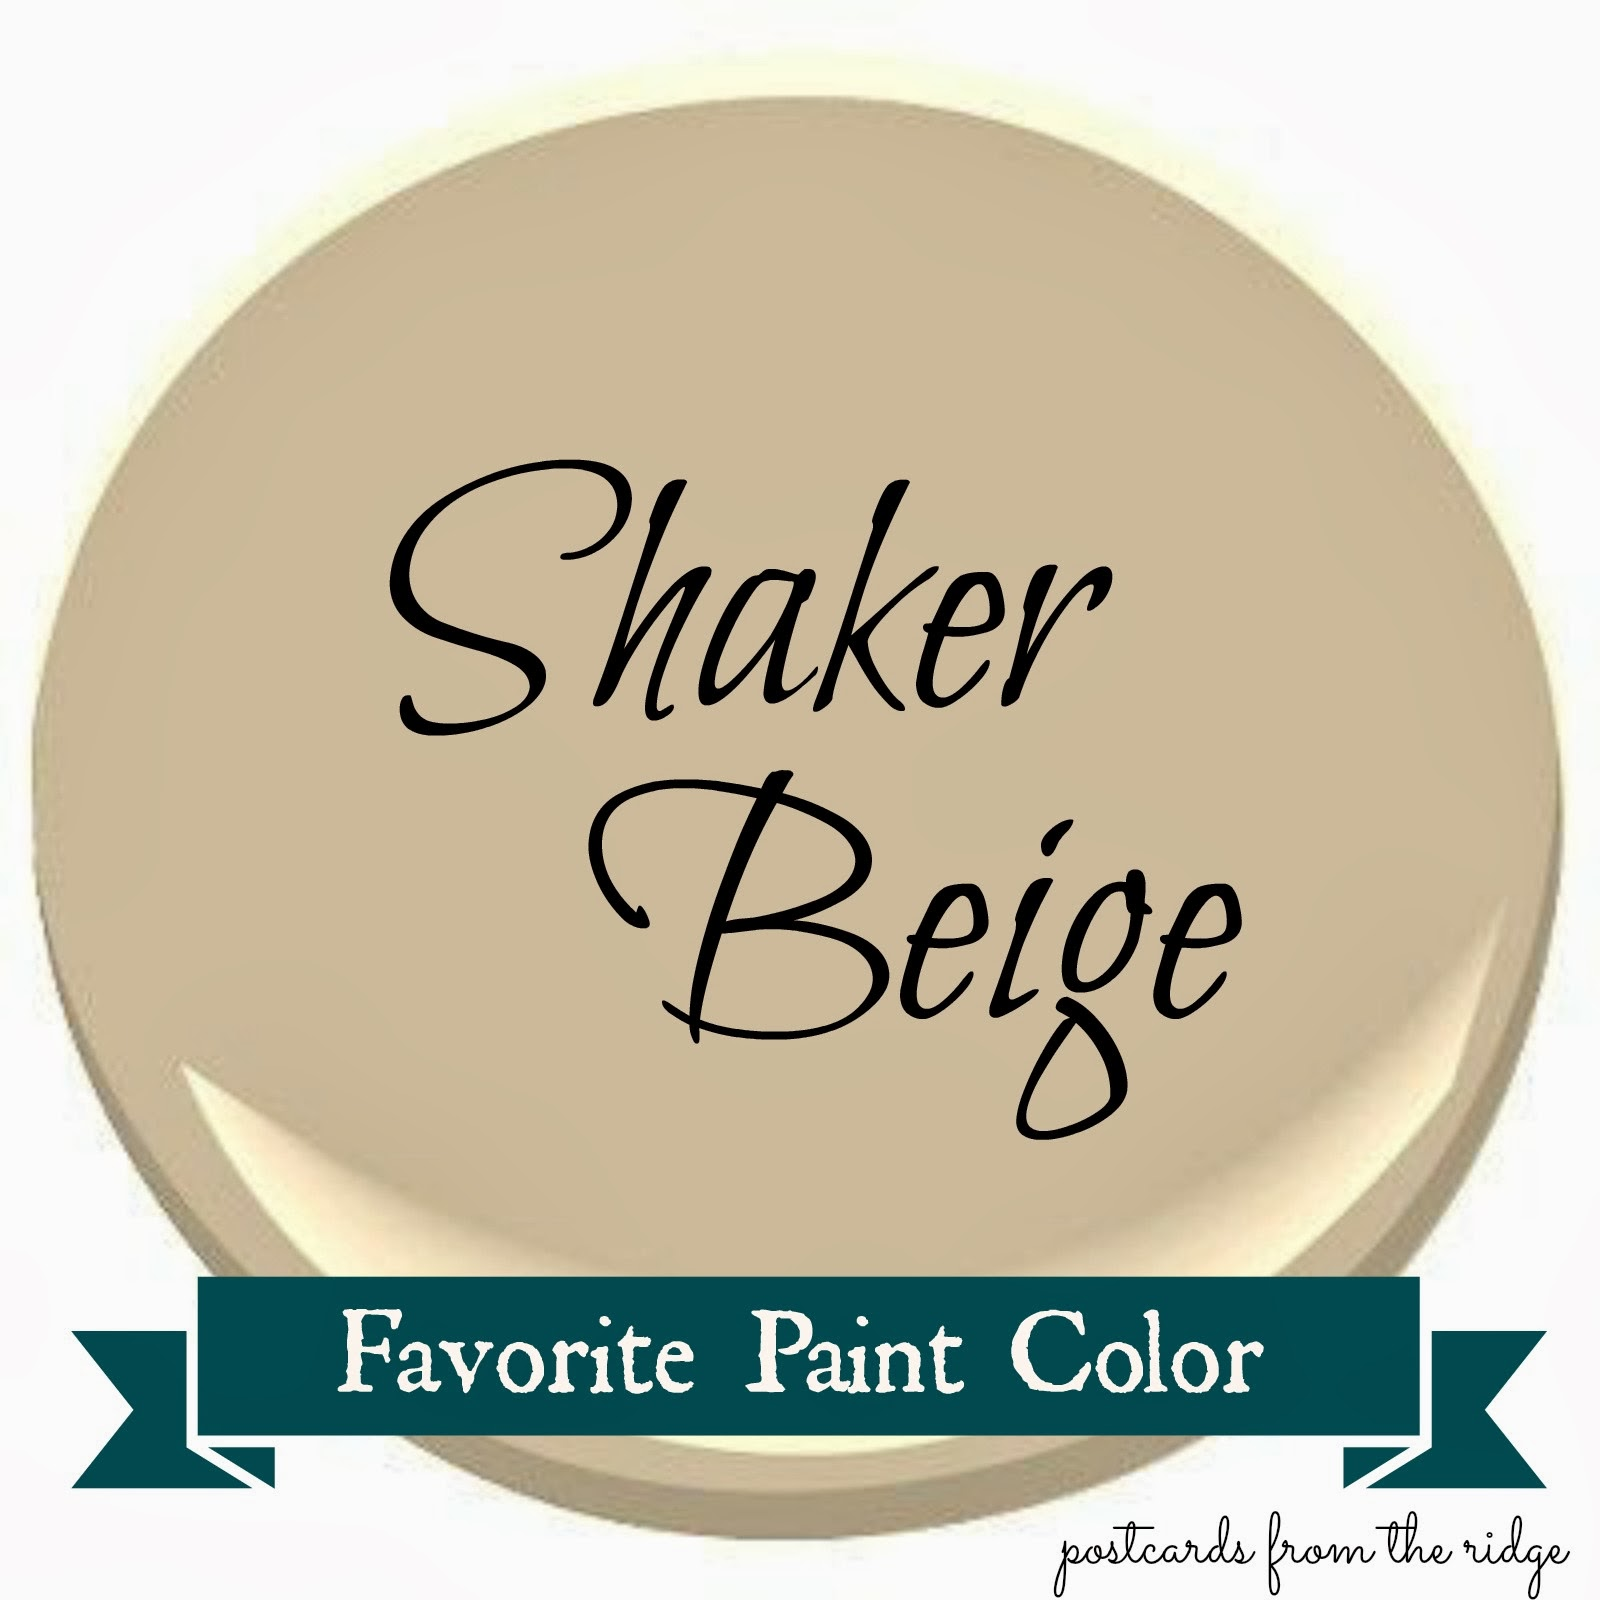 Benjamin moore shaker beige favorite paint color for Cream beige paint color